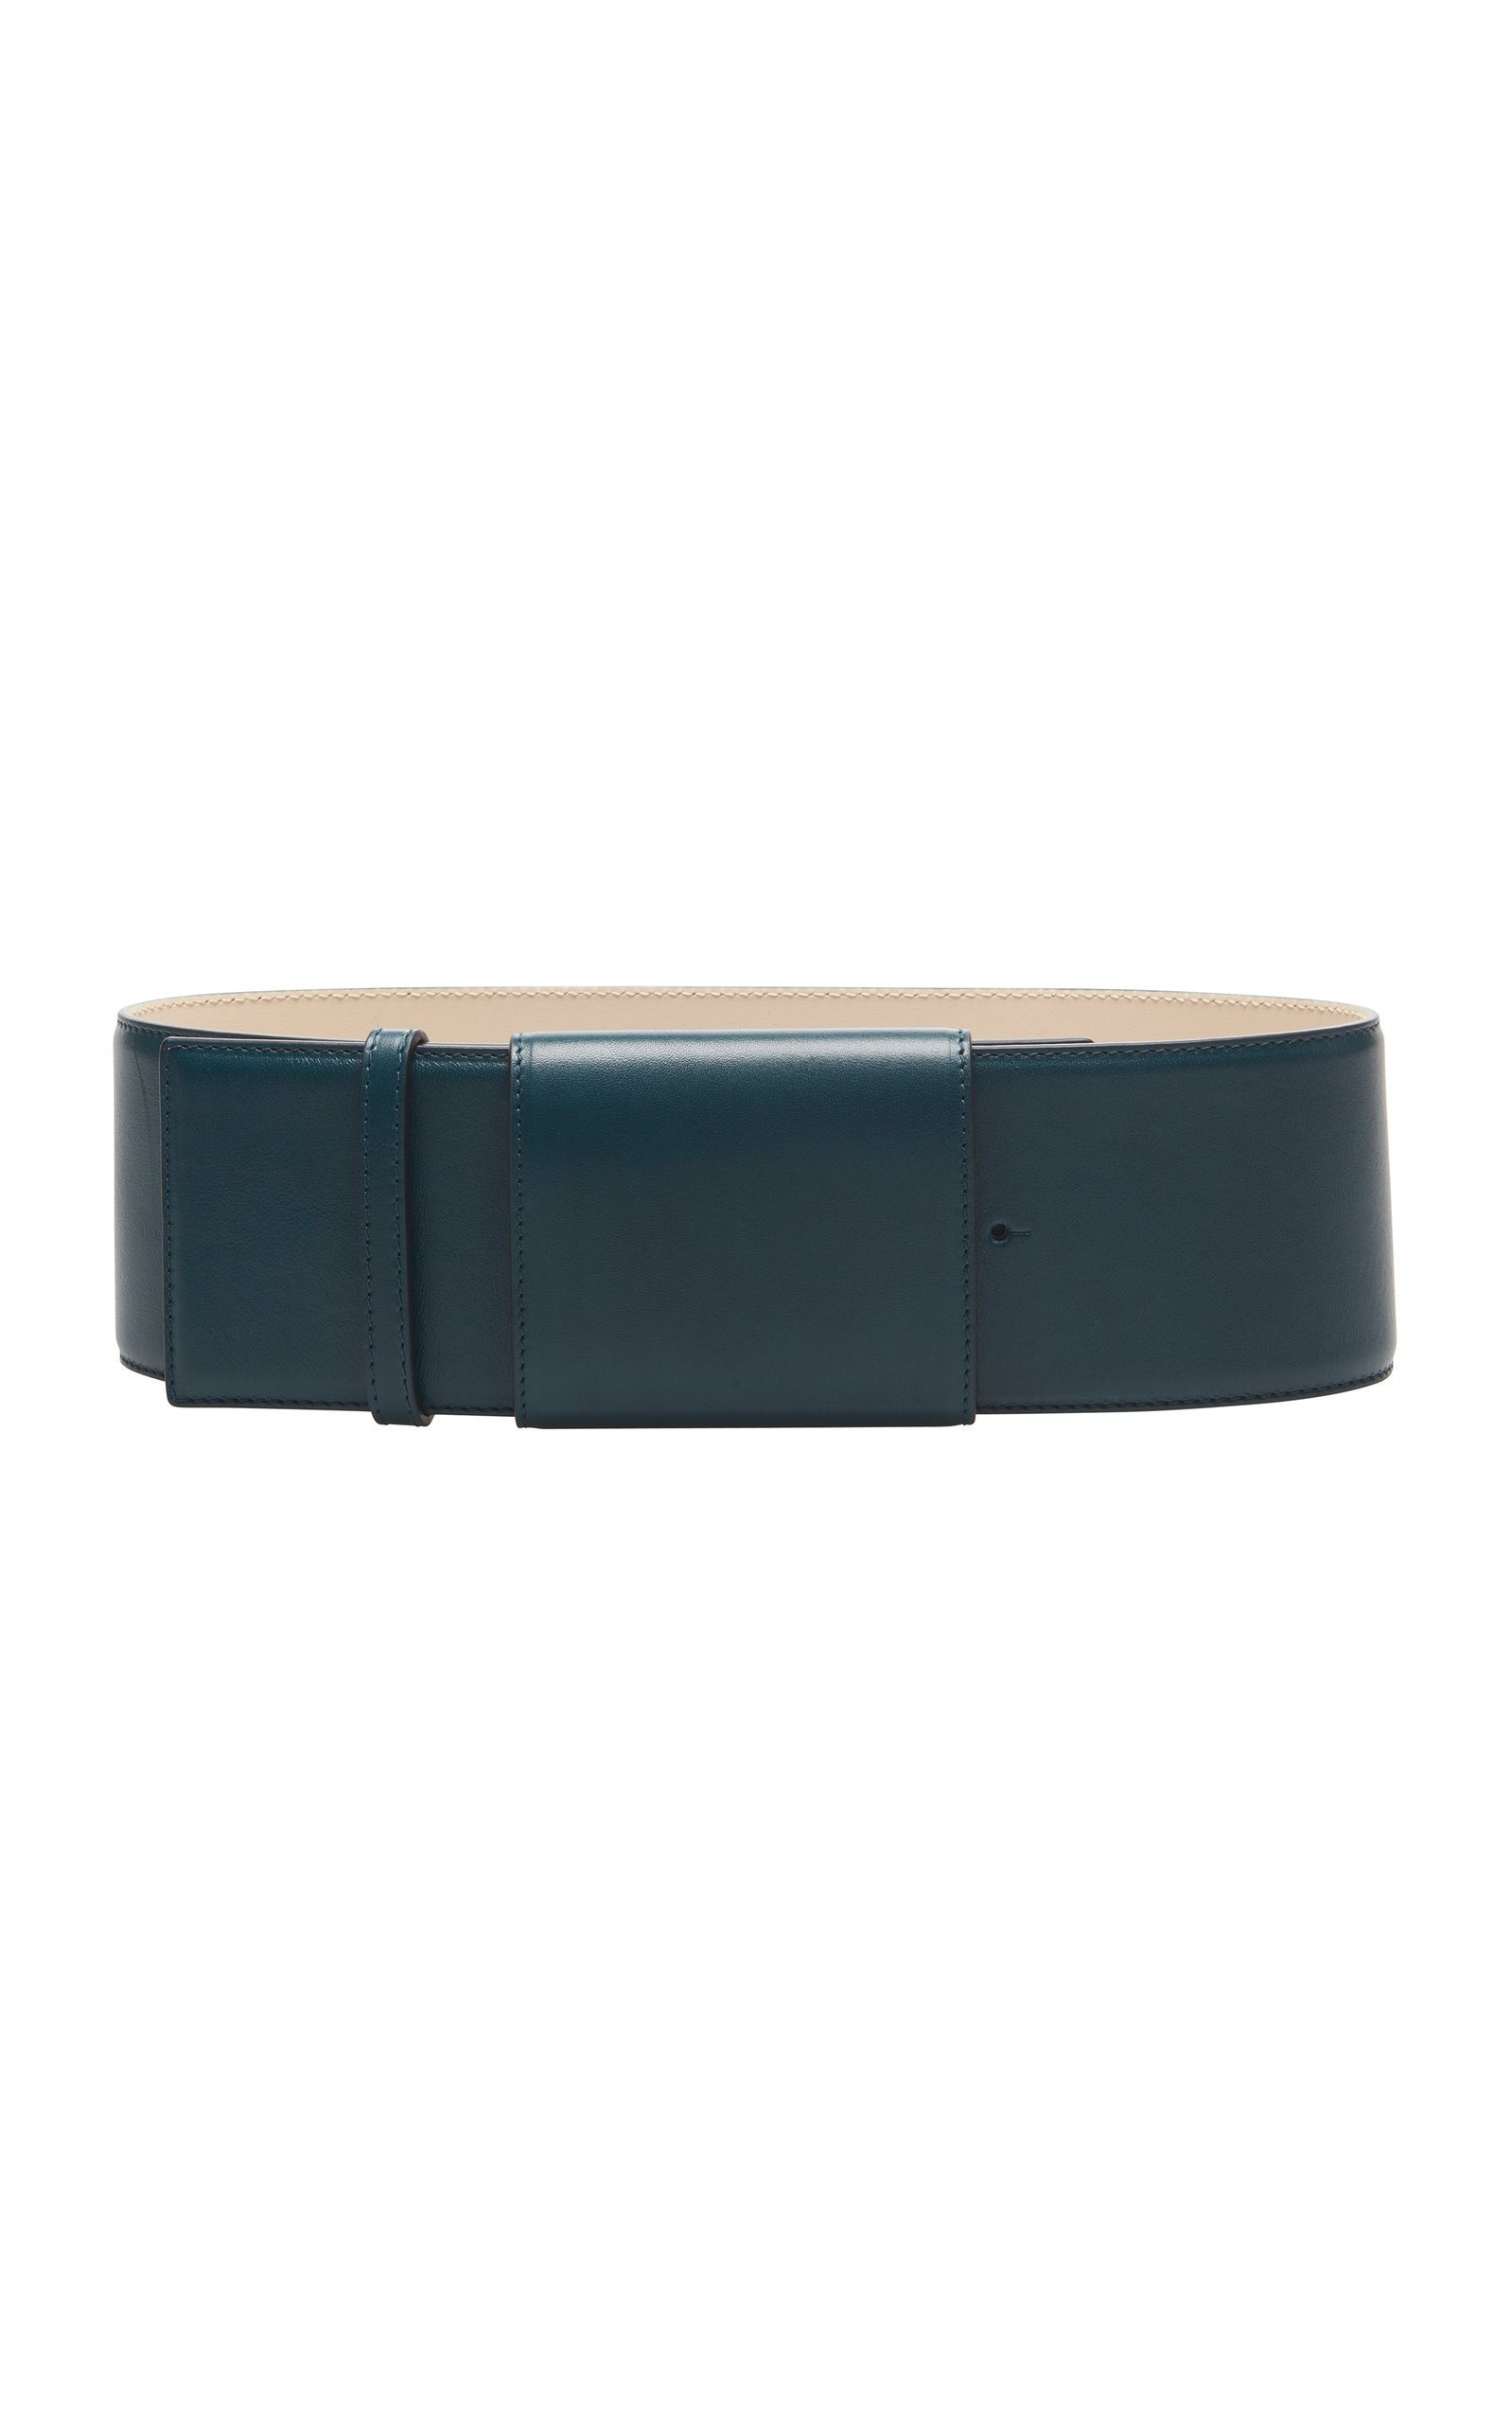 Marni Covered-Buckle Leather Belt Size: 85 cm